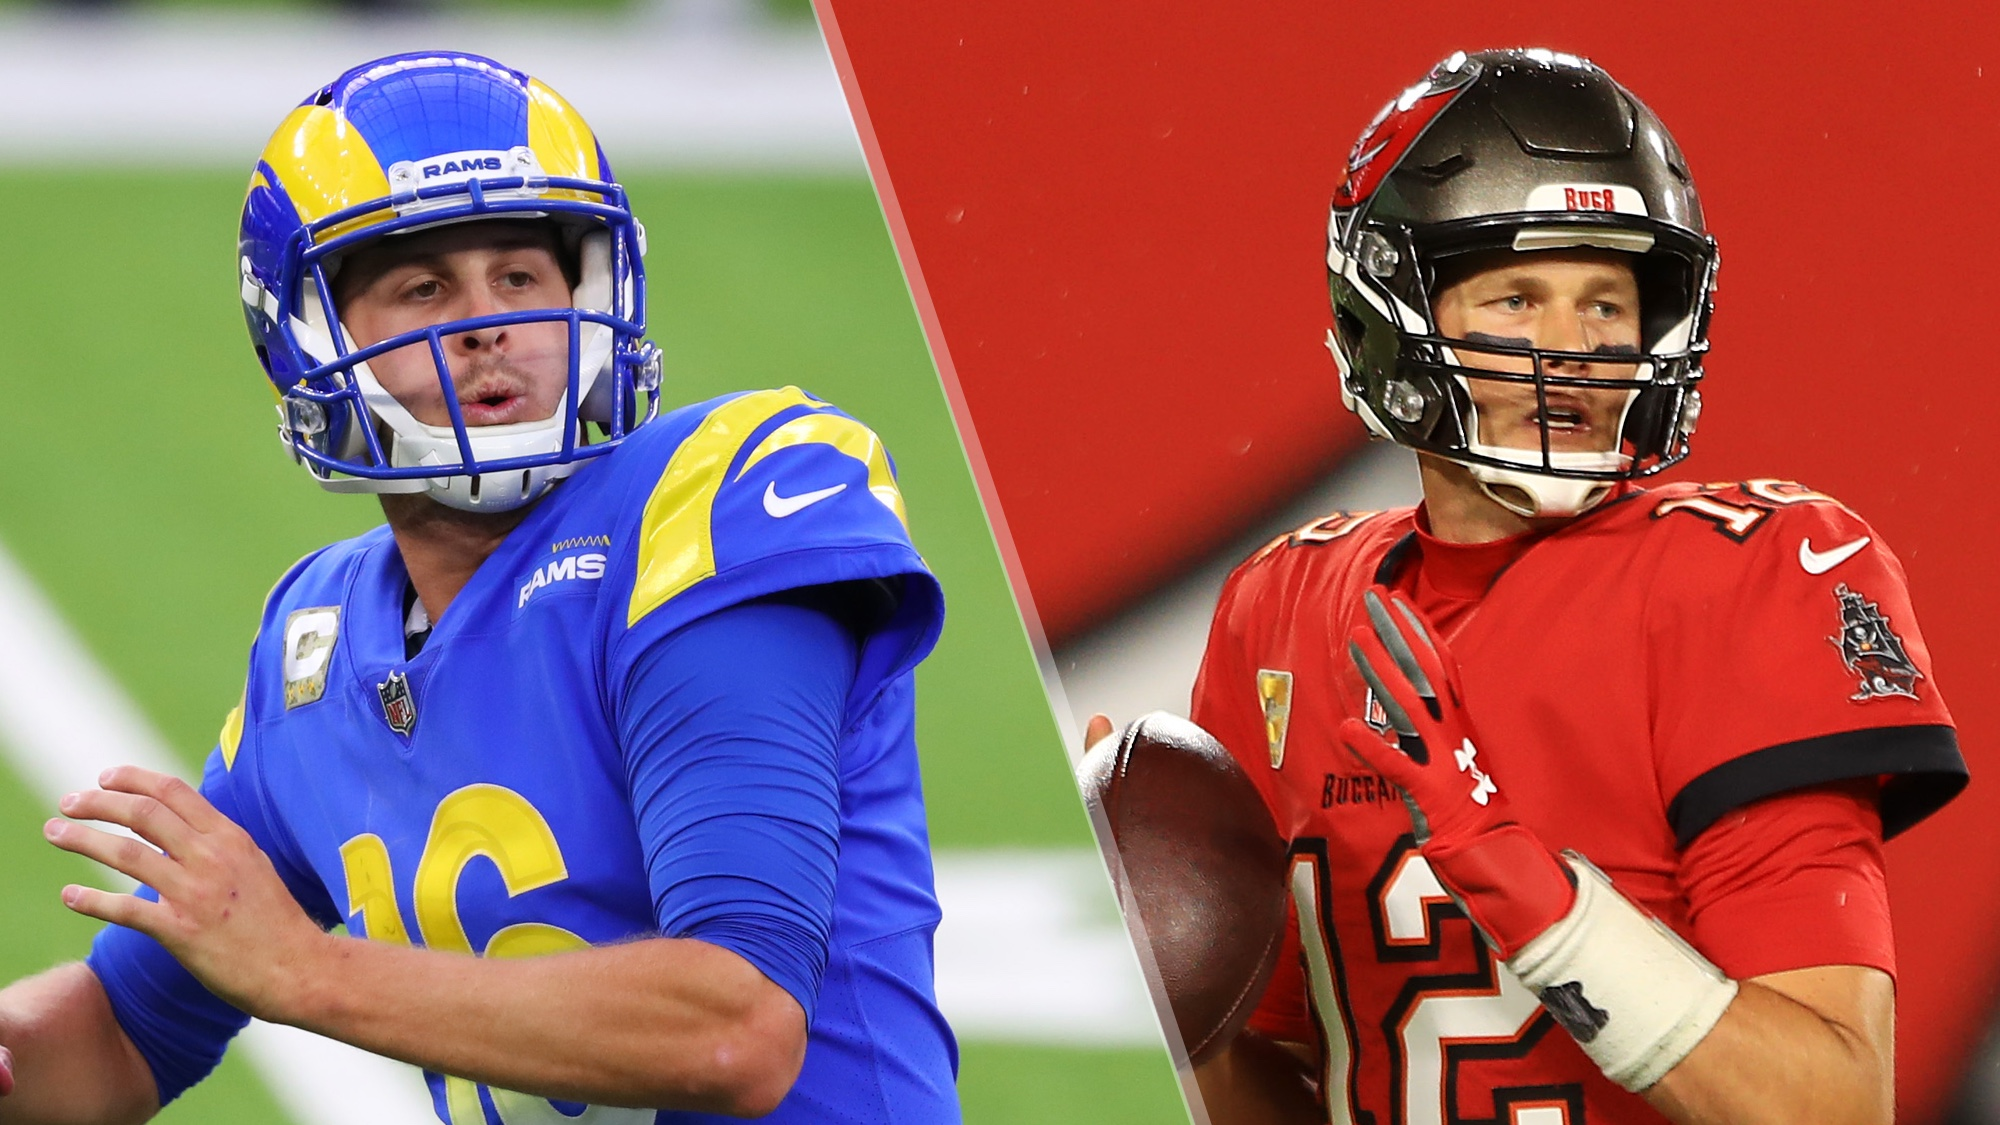 haqnmzohqo9zsm https www tomsguide com news rams vs buccaneers live stream how to watch monday night football online